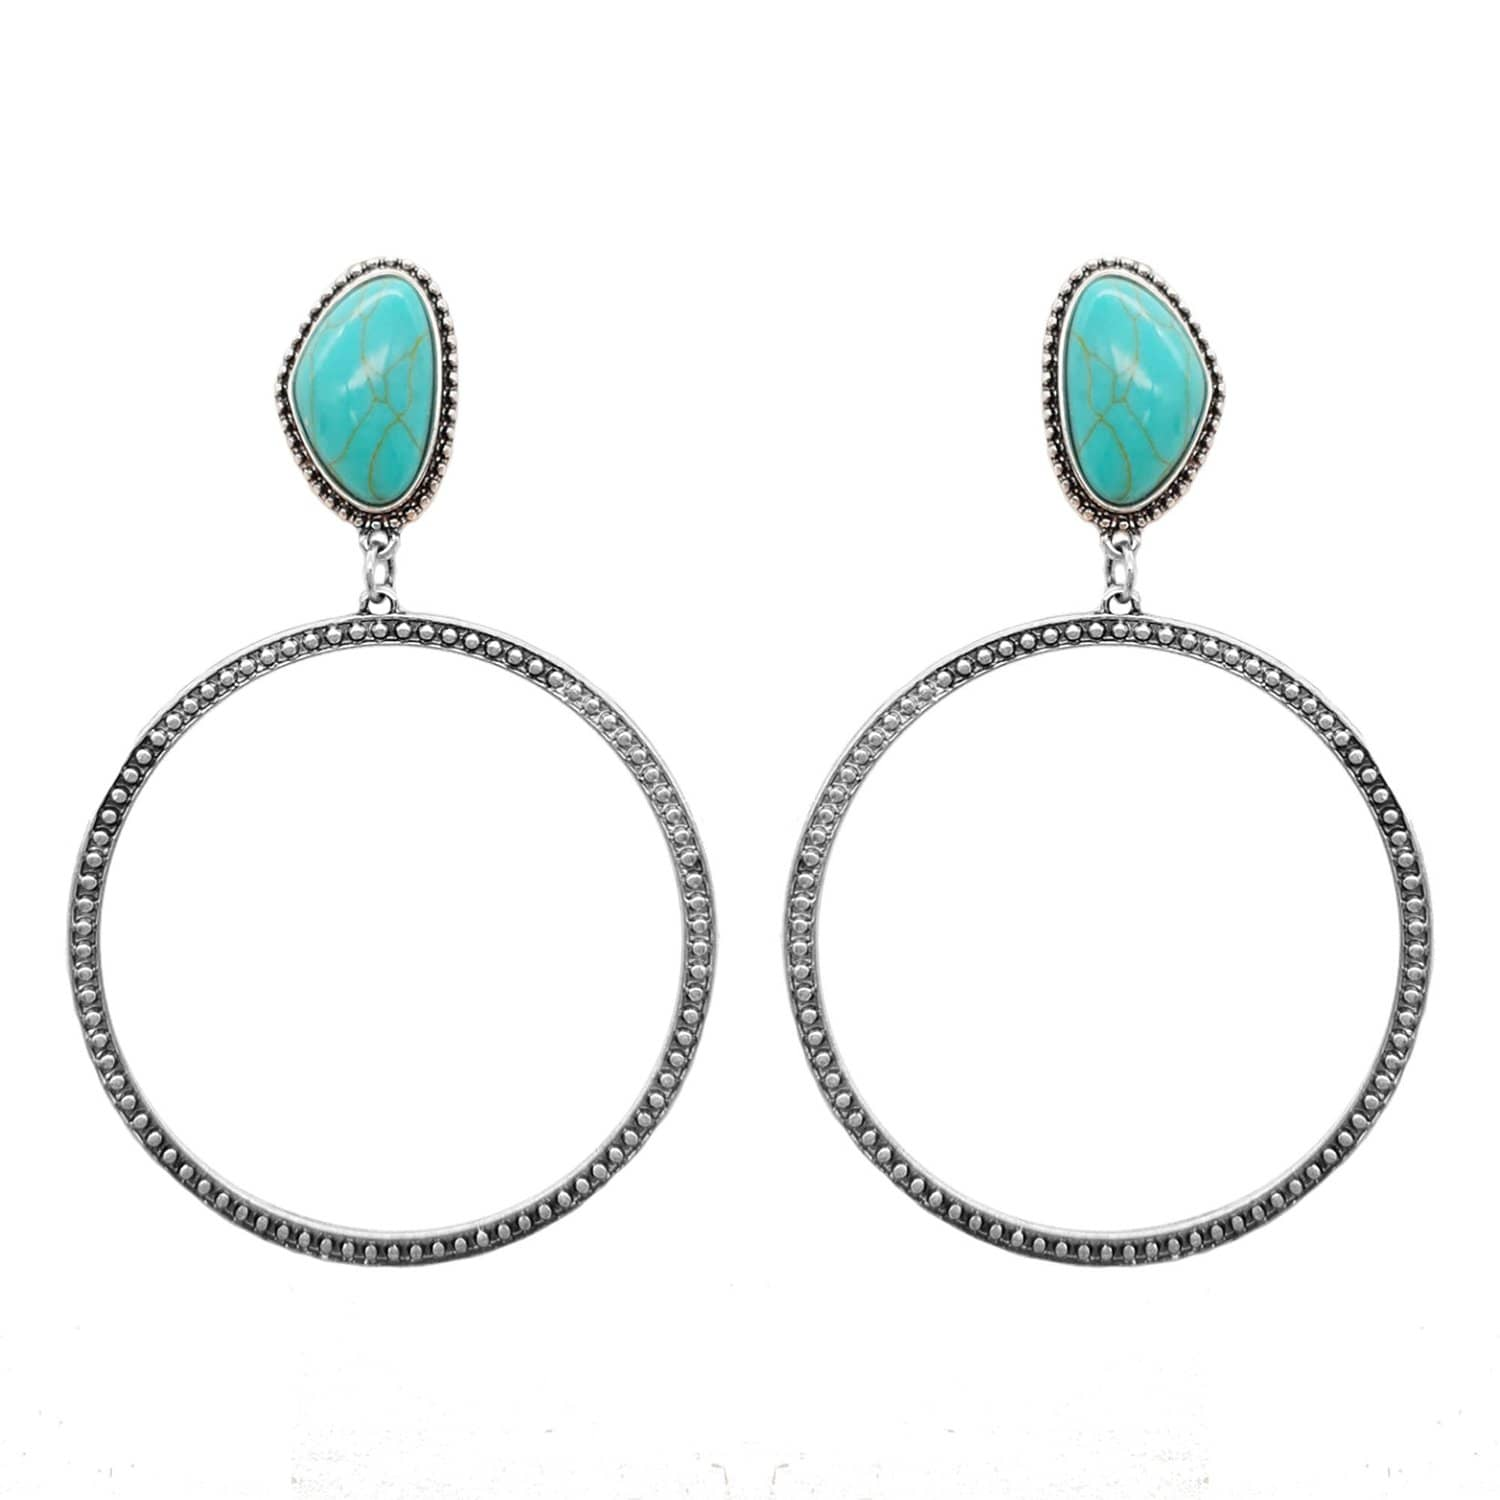 Accessorize In Style Fashion Earrings Fashion Turquoise Hoop Earrings